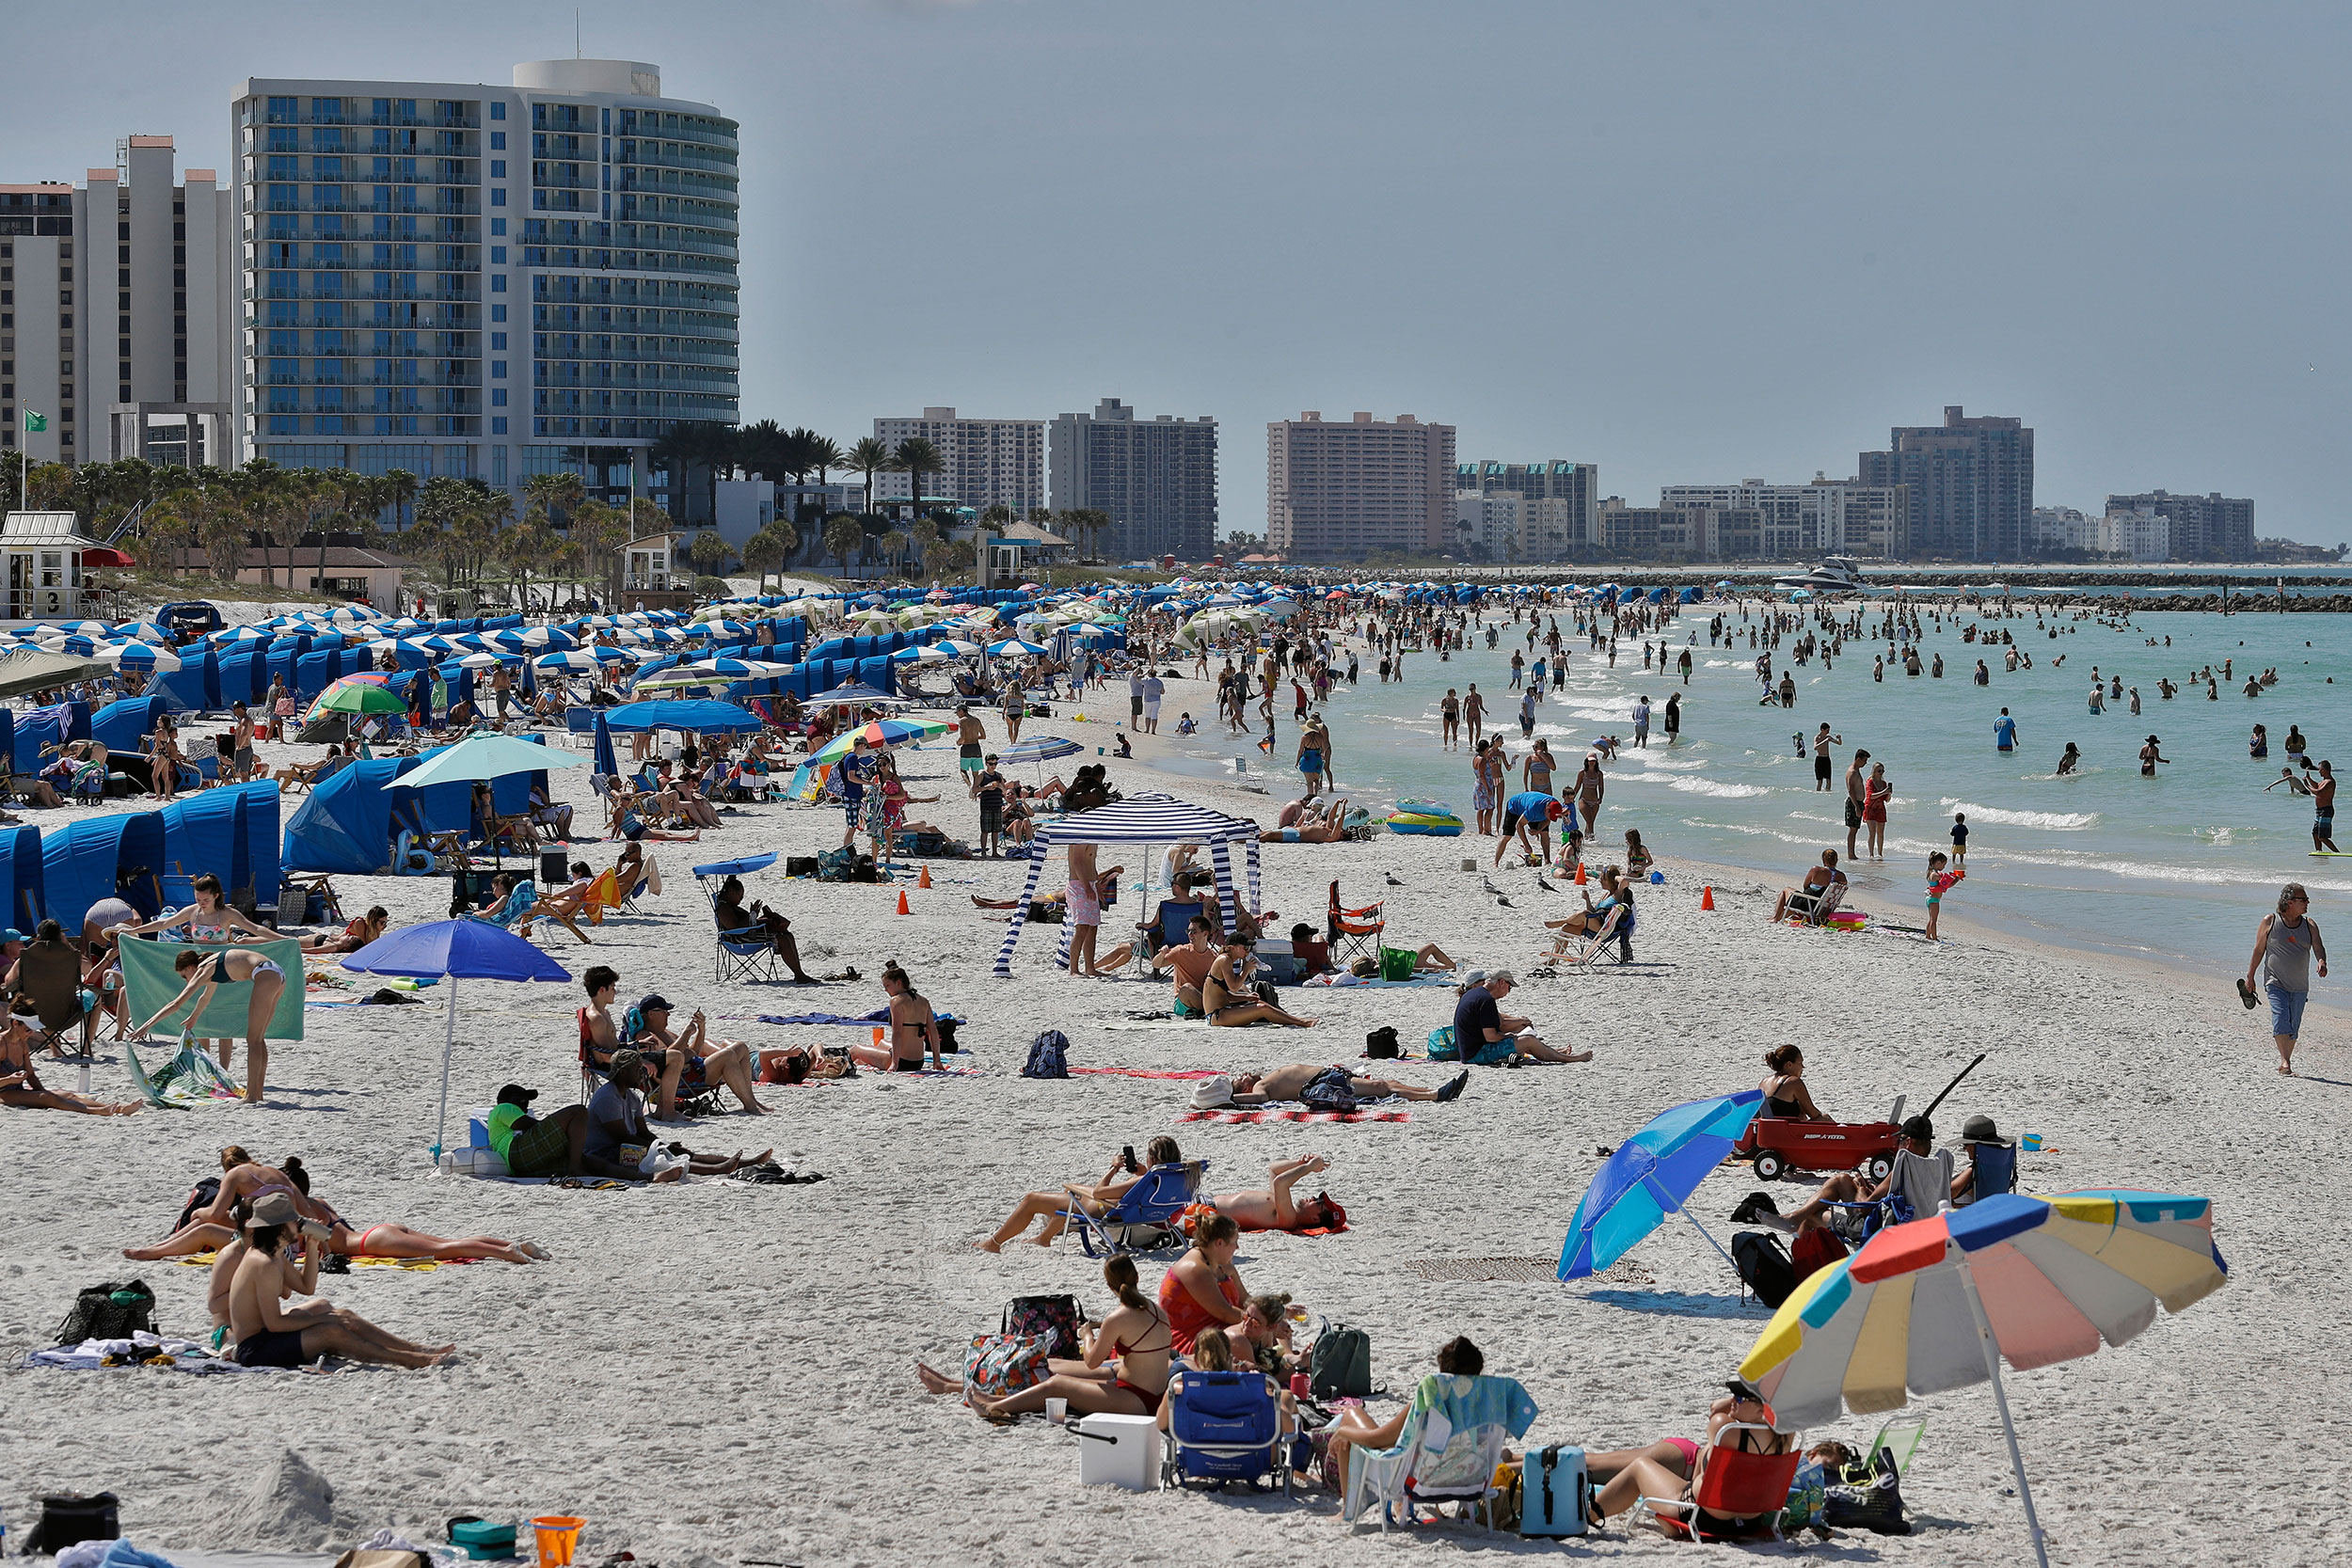 Visitors enjoy Clearwater Beach on March 18, in Clearwater Beach, Florida.